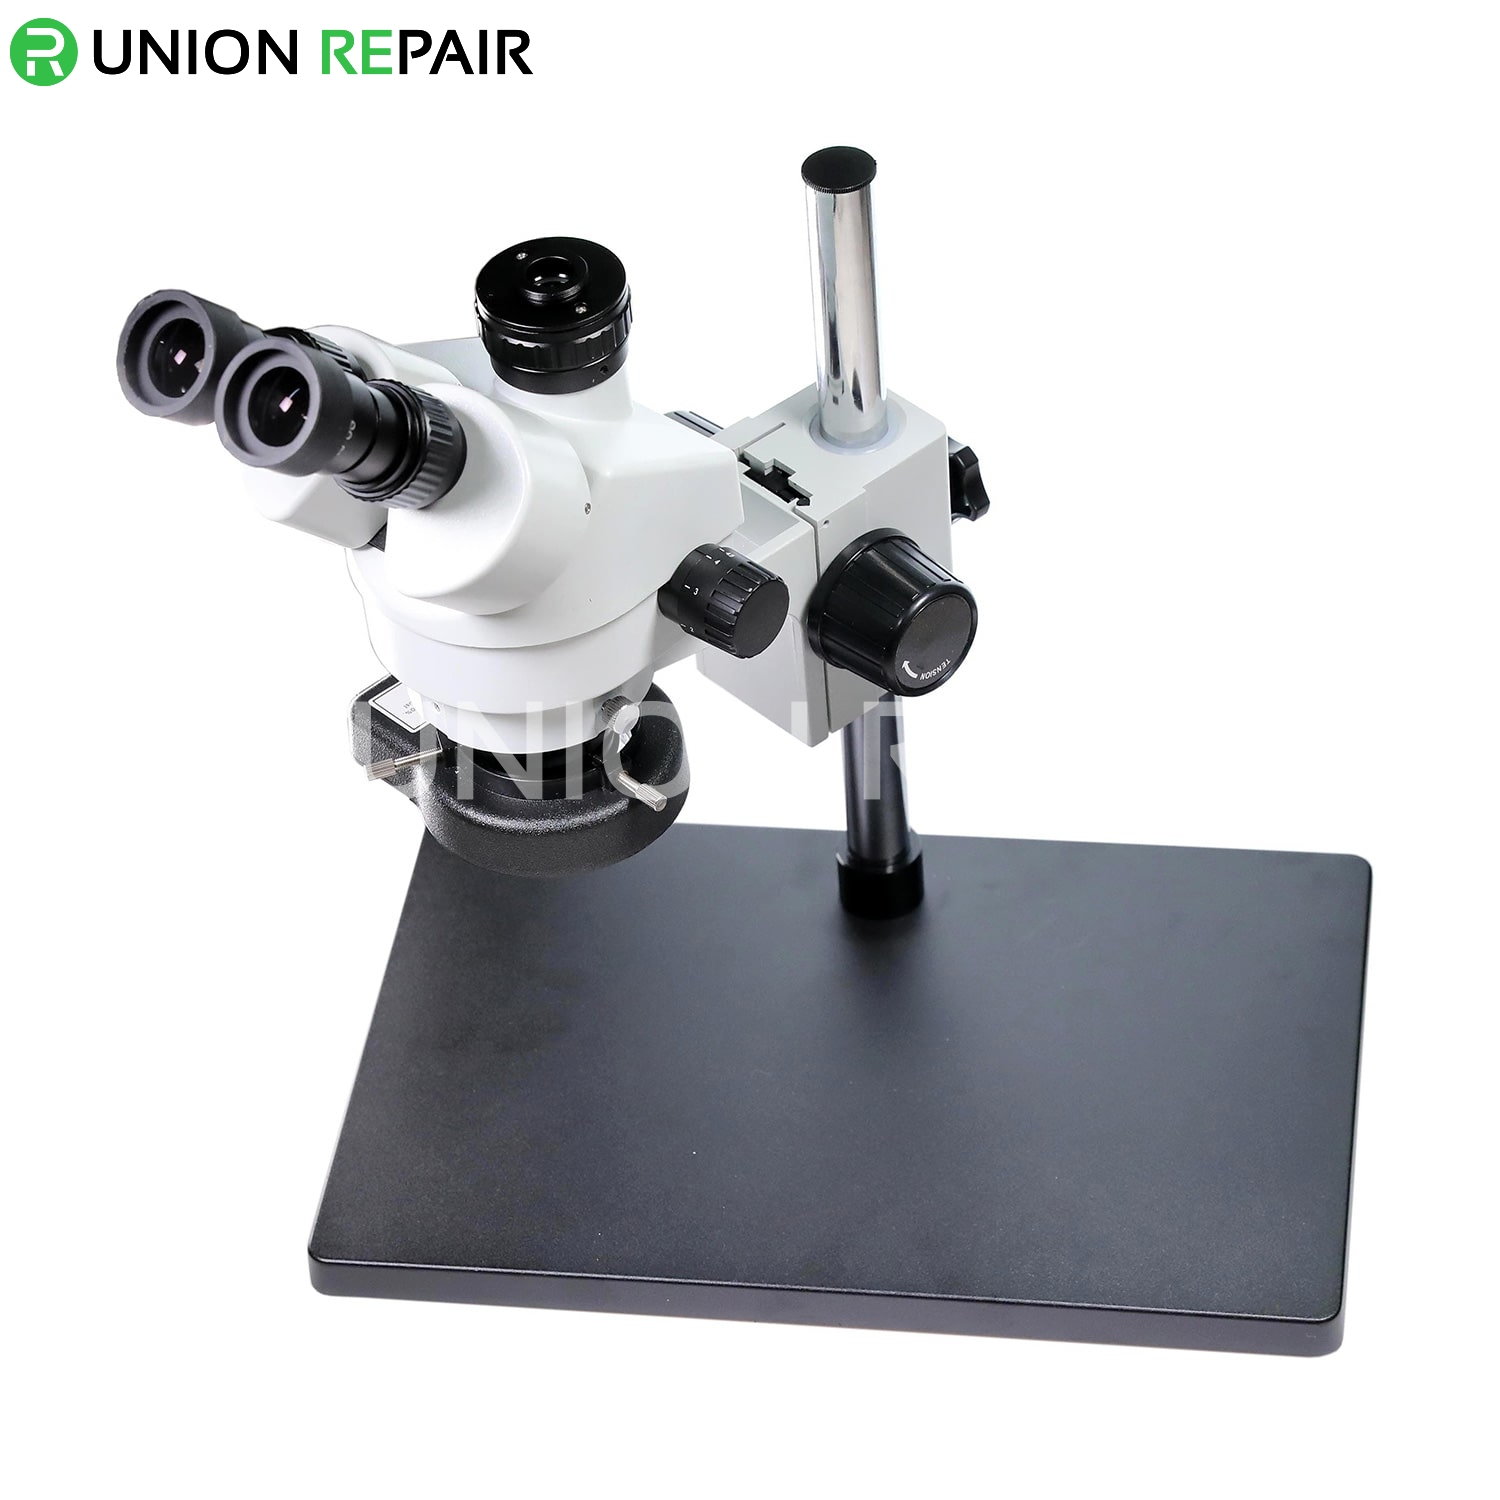 7-45x SZM45T-B1 Trinocular Industrial Stereo Microscope with LED lights